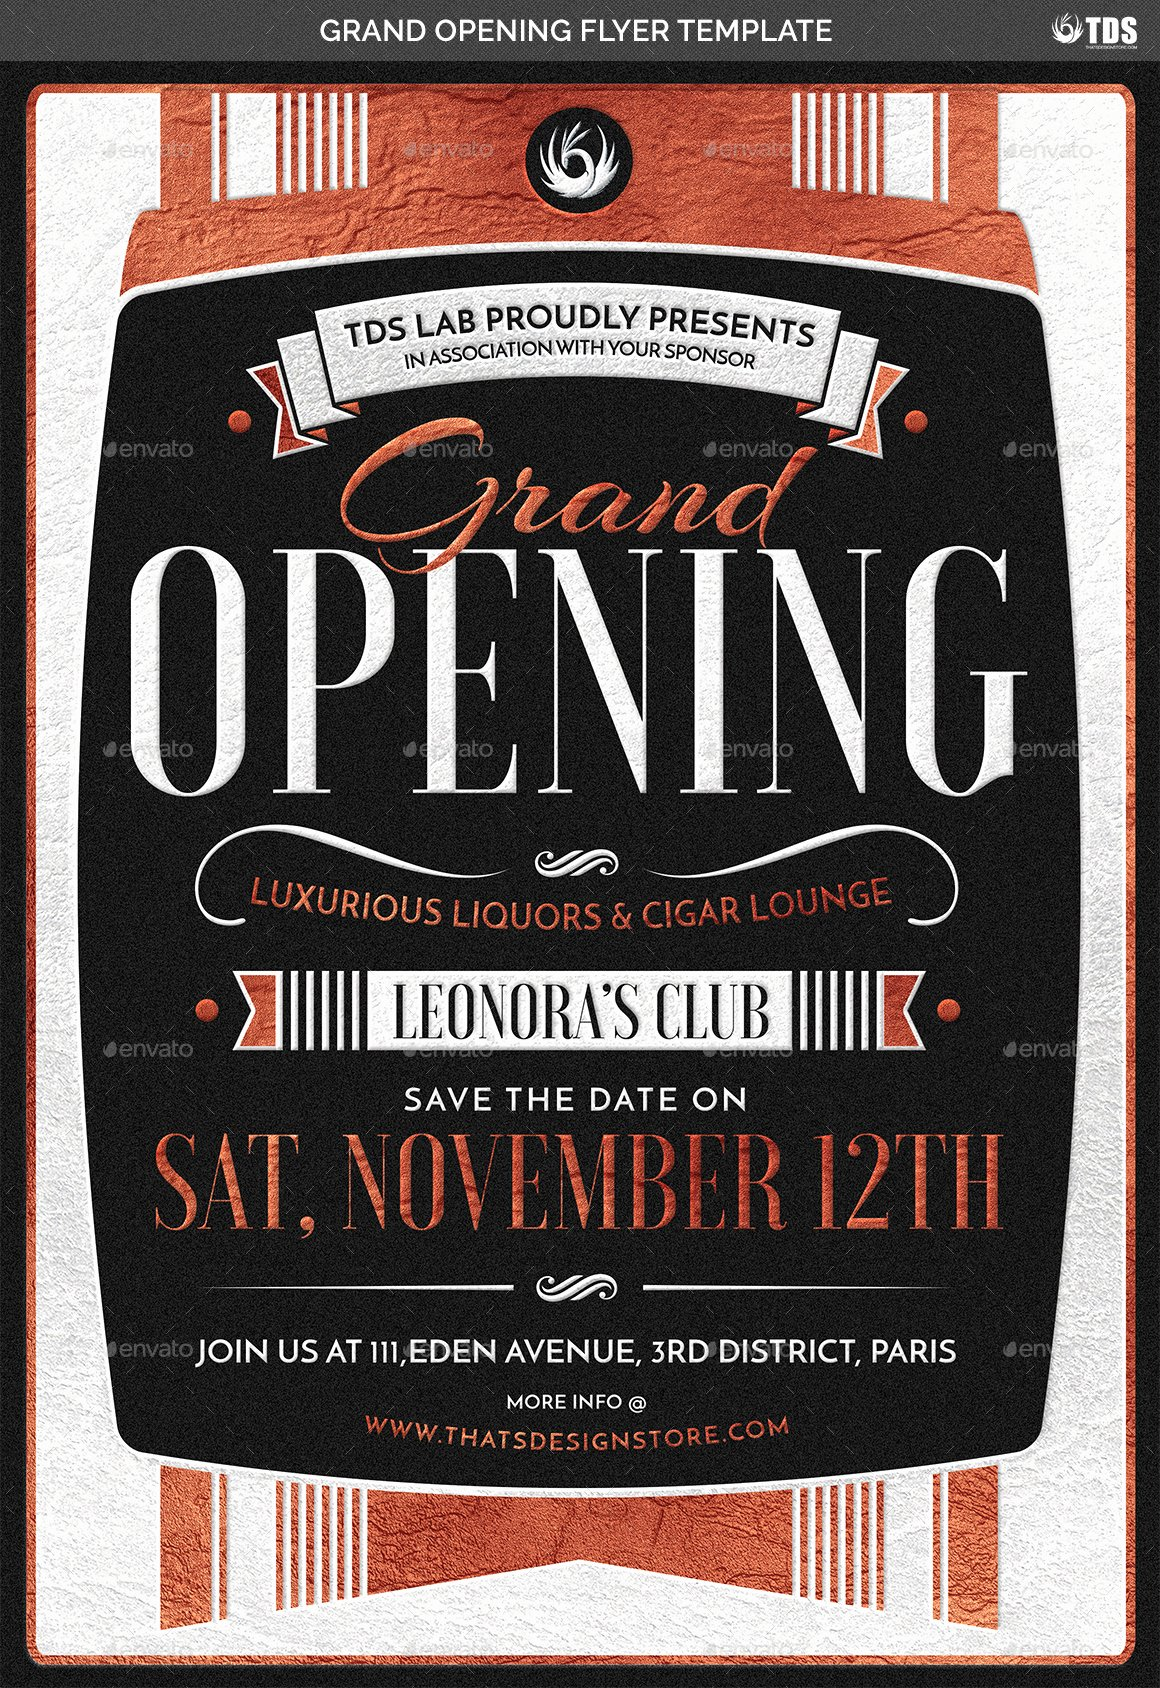 Grand Opening Flyer Template Inspirational Grand Opening Flyer Template by Lou606